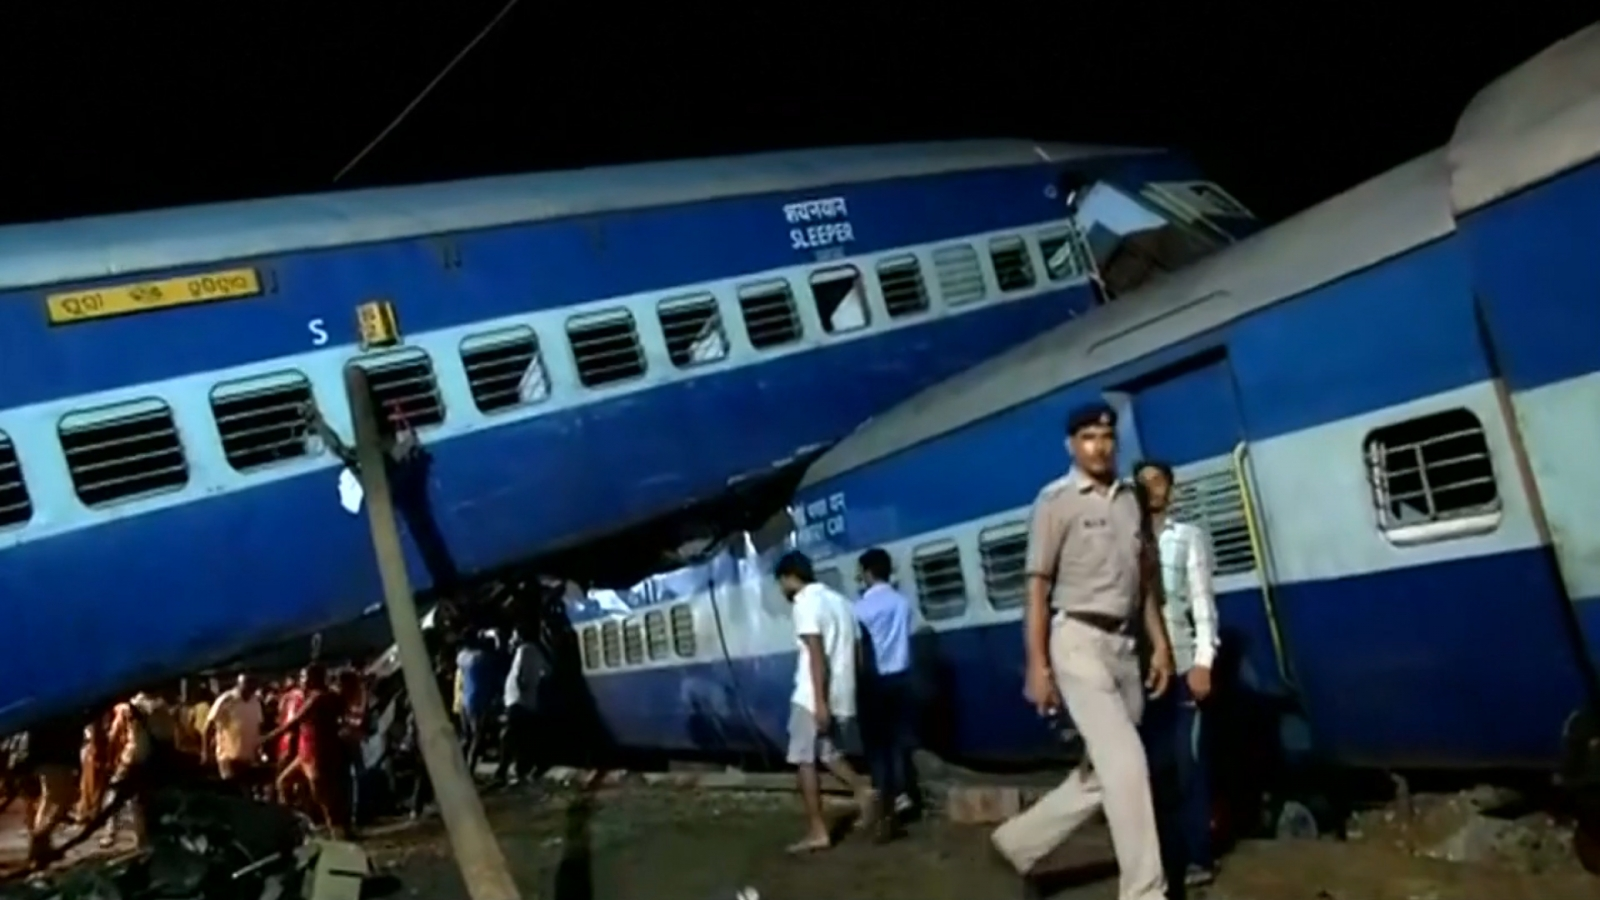 India: At least 23 dead and over 100 injured after huge train derailment